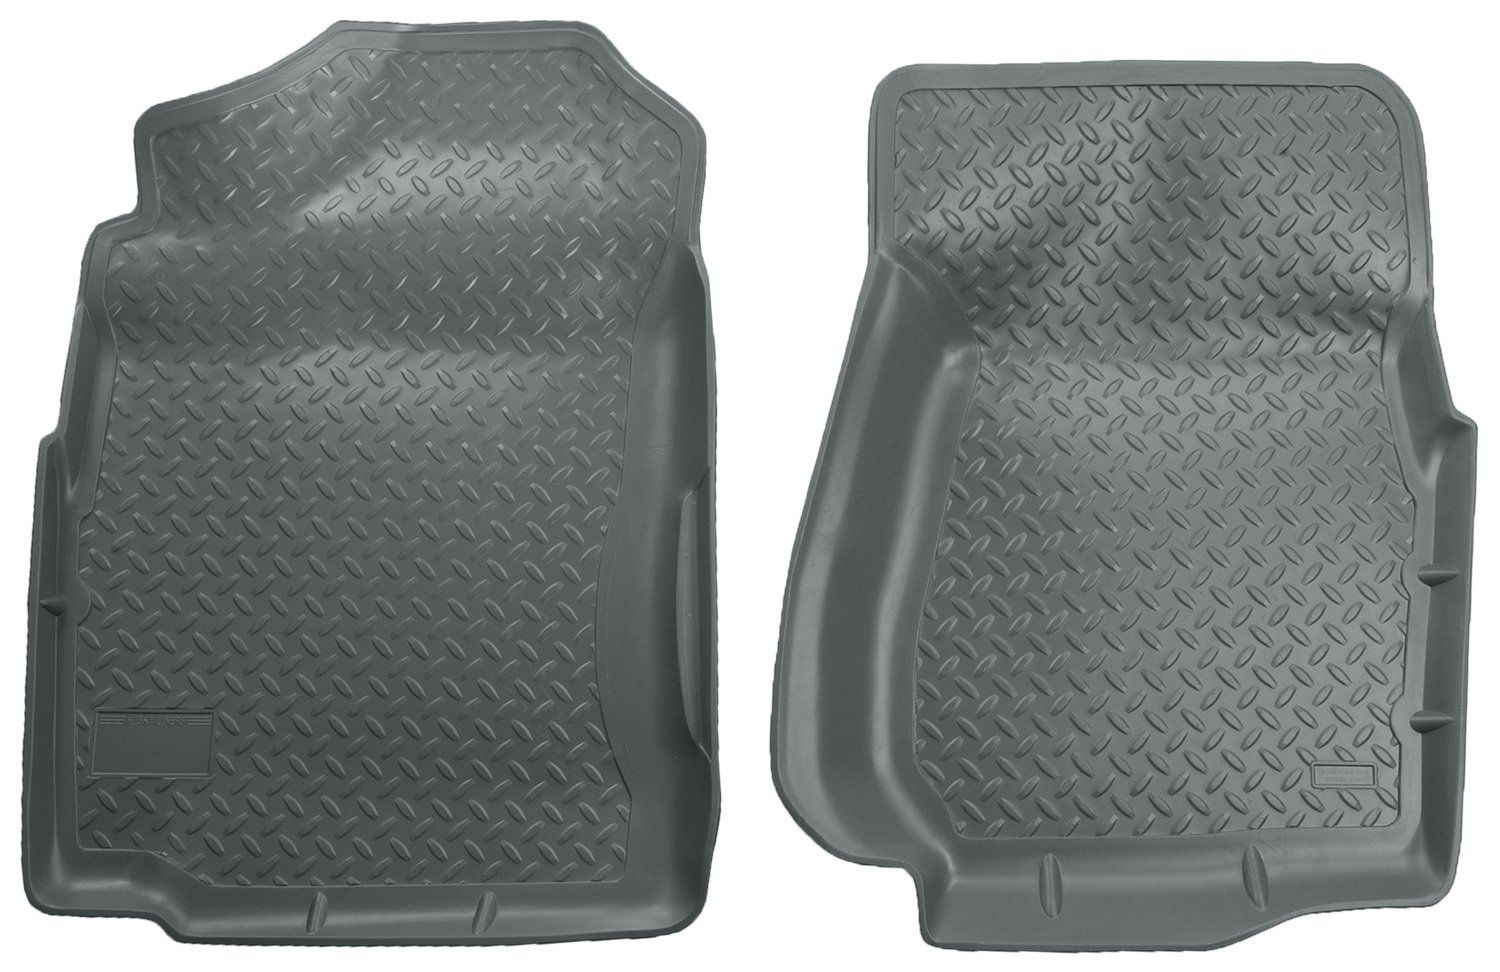 Husky Liners Front Floor Liners Fits 9907 Silverado Sierra 1500 Standard Cab Learn More By Visiting The Image Link Husky Liners Floor Liners Classic Liner